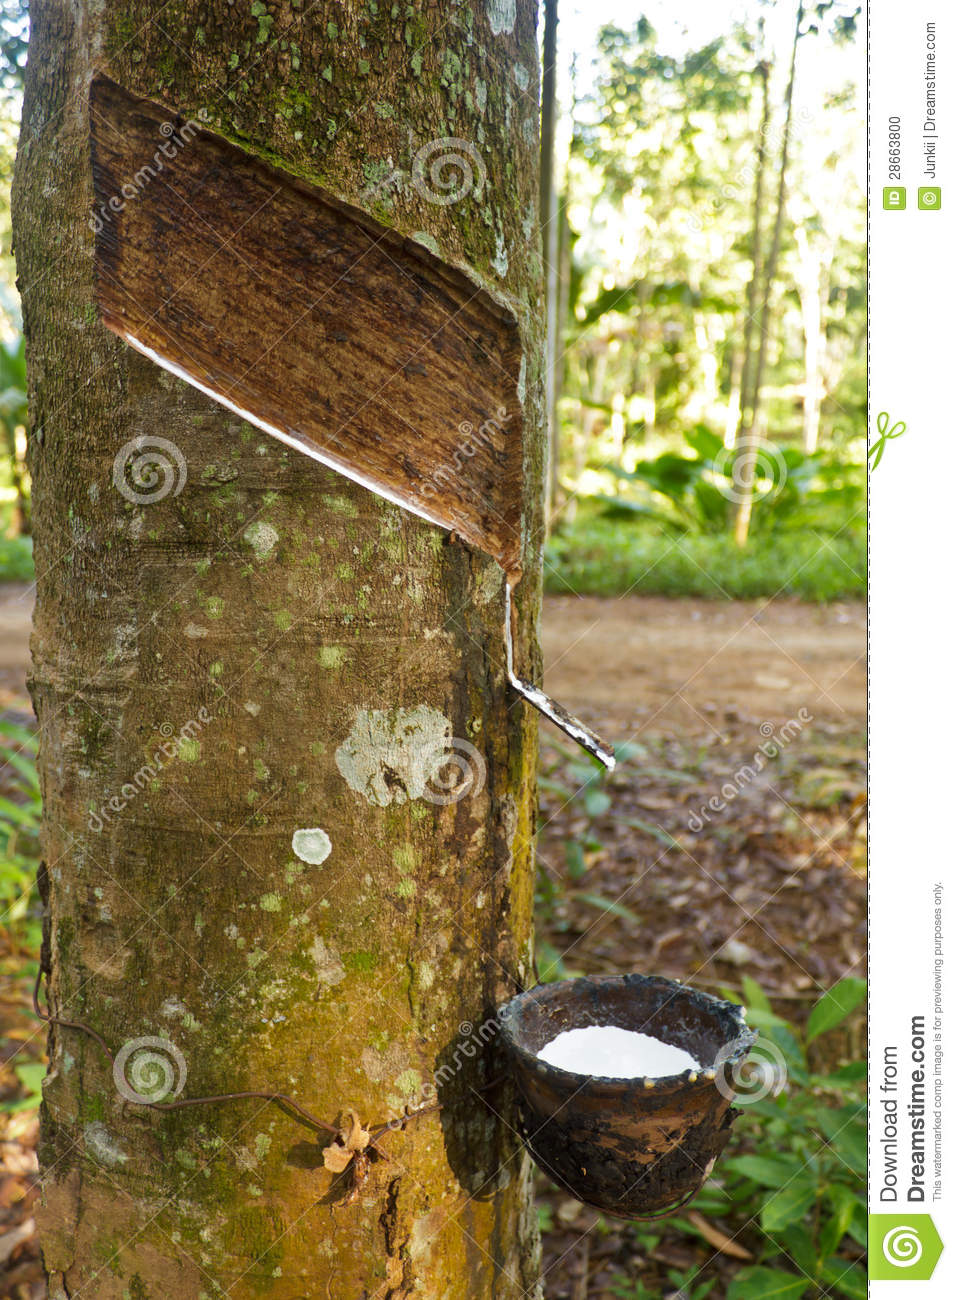 Natural Rubber Harvest Stock Photo Image Of Plantation